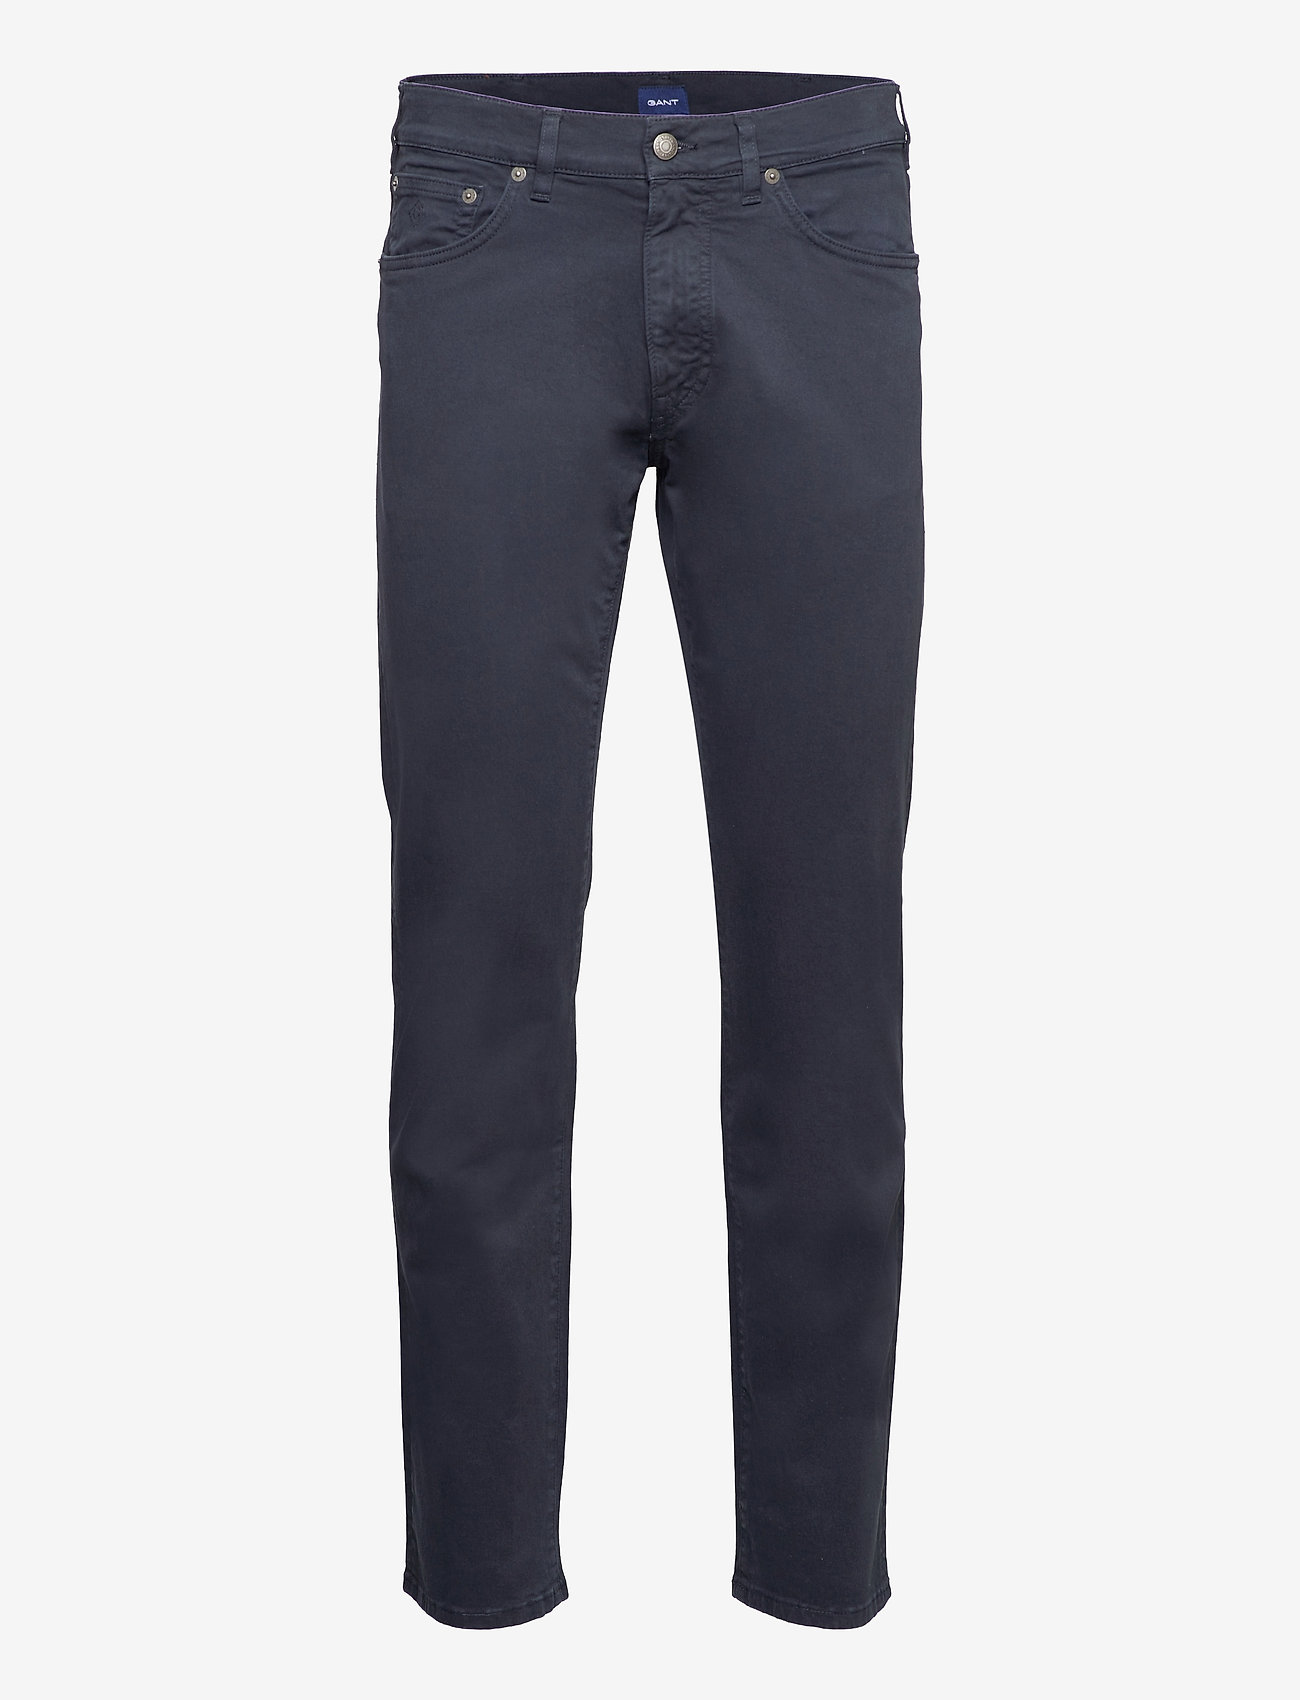 GANT - REGULAR DESERT JEANS - regular jeans - navy - 0